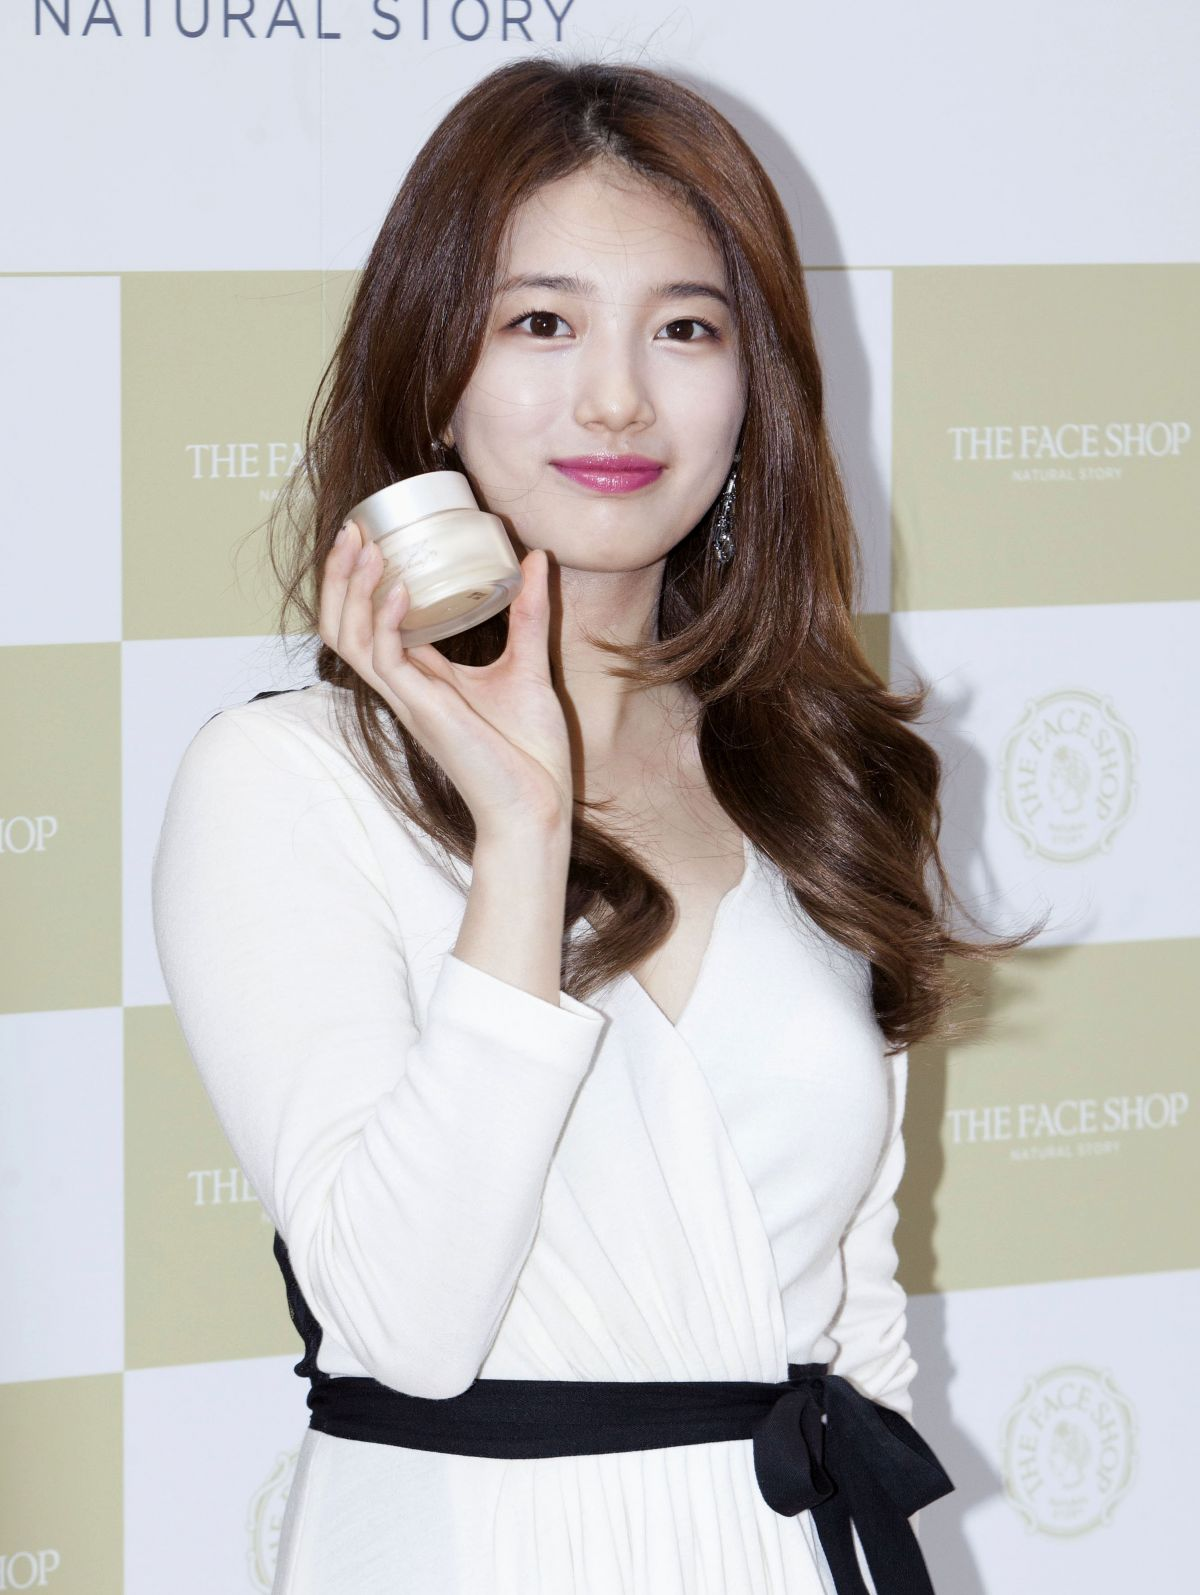 BAE SUZY at The Face Shop Store Photocall in Seoul 09/19/2015